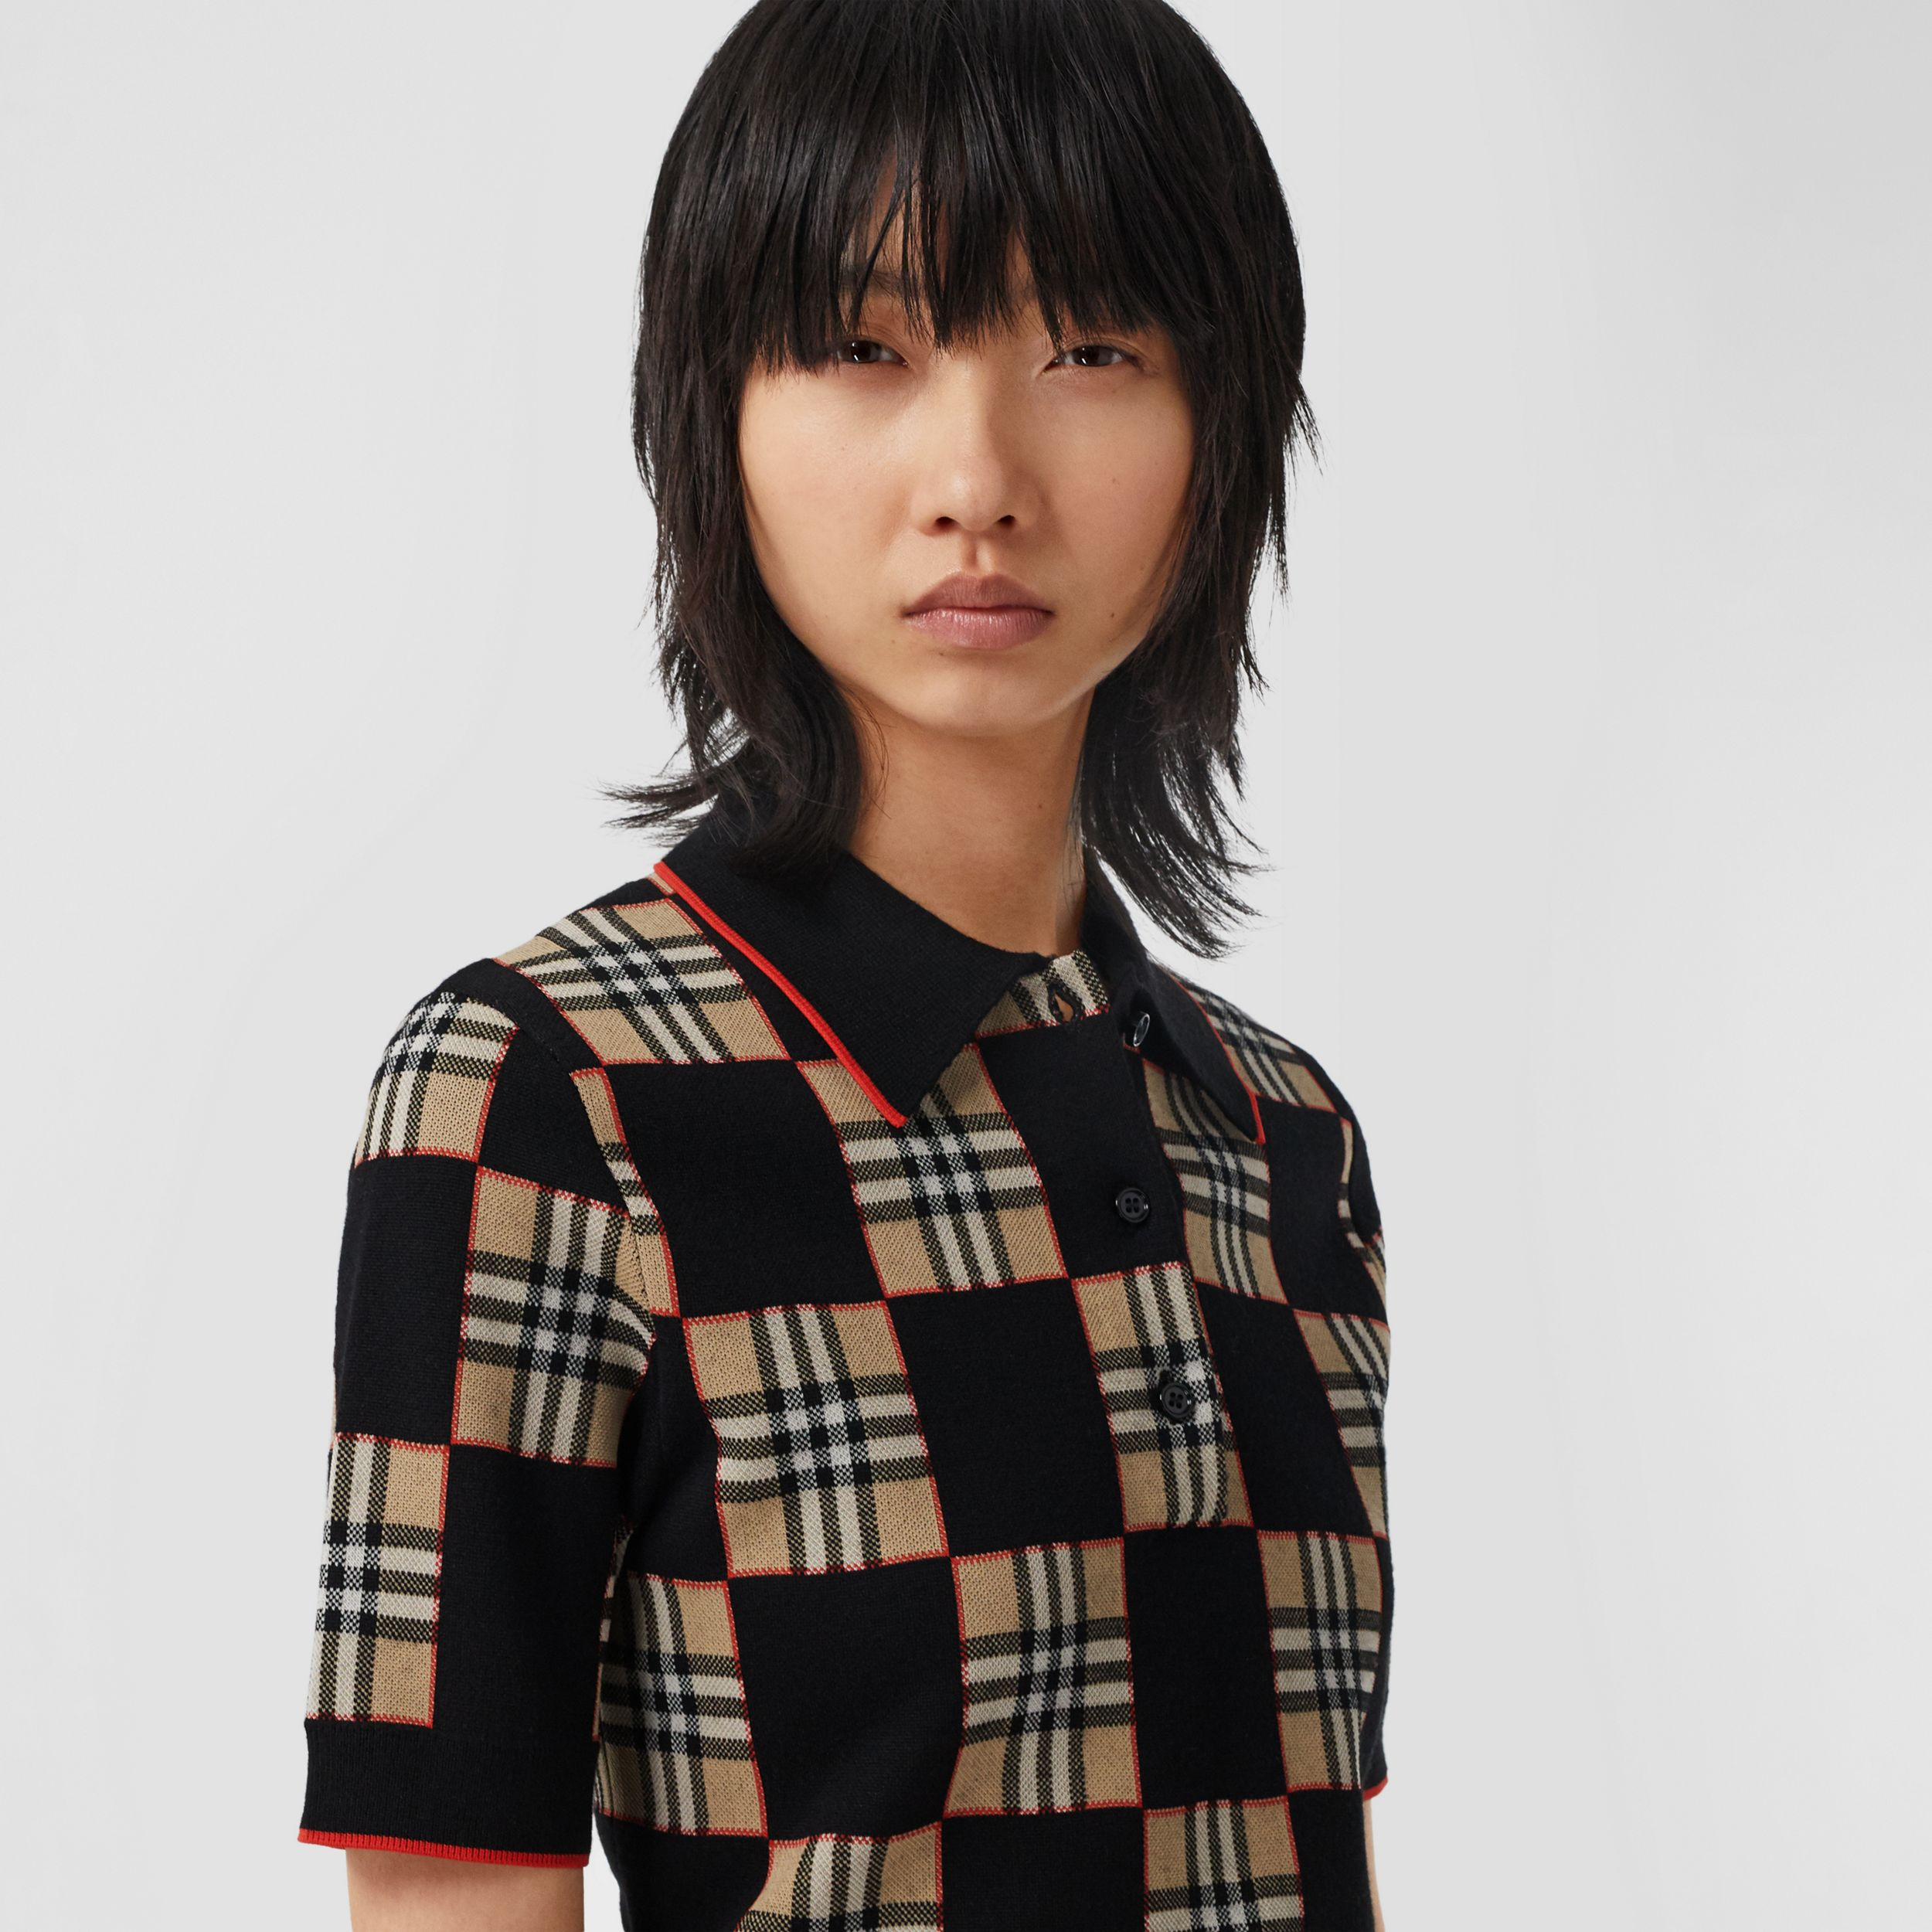 Chequer Merino Wool Blend Jacquard Polo Shirt in Black/archive Beige - Women | Burberry - 2